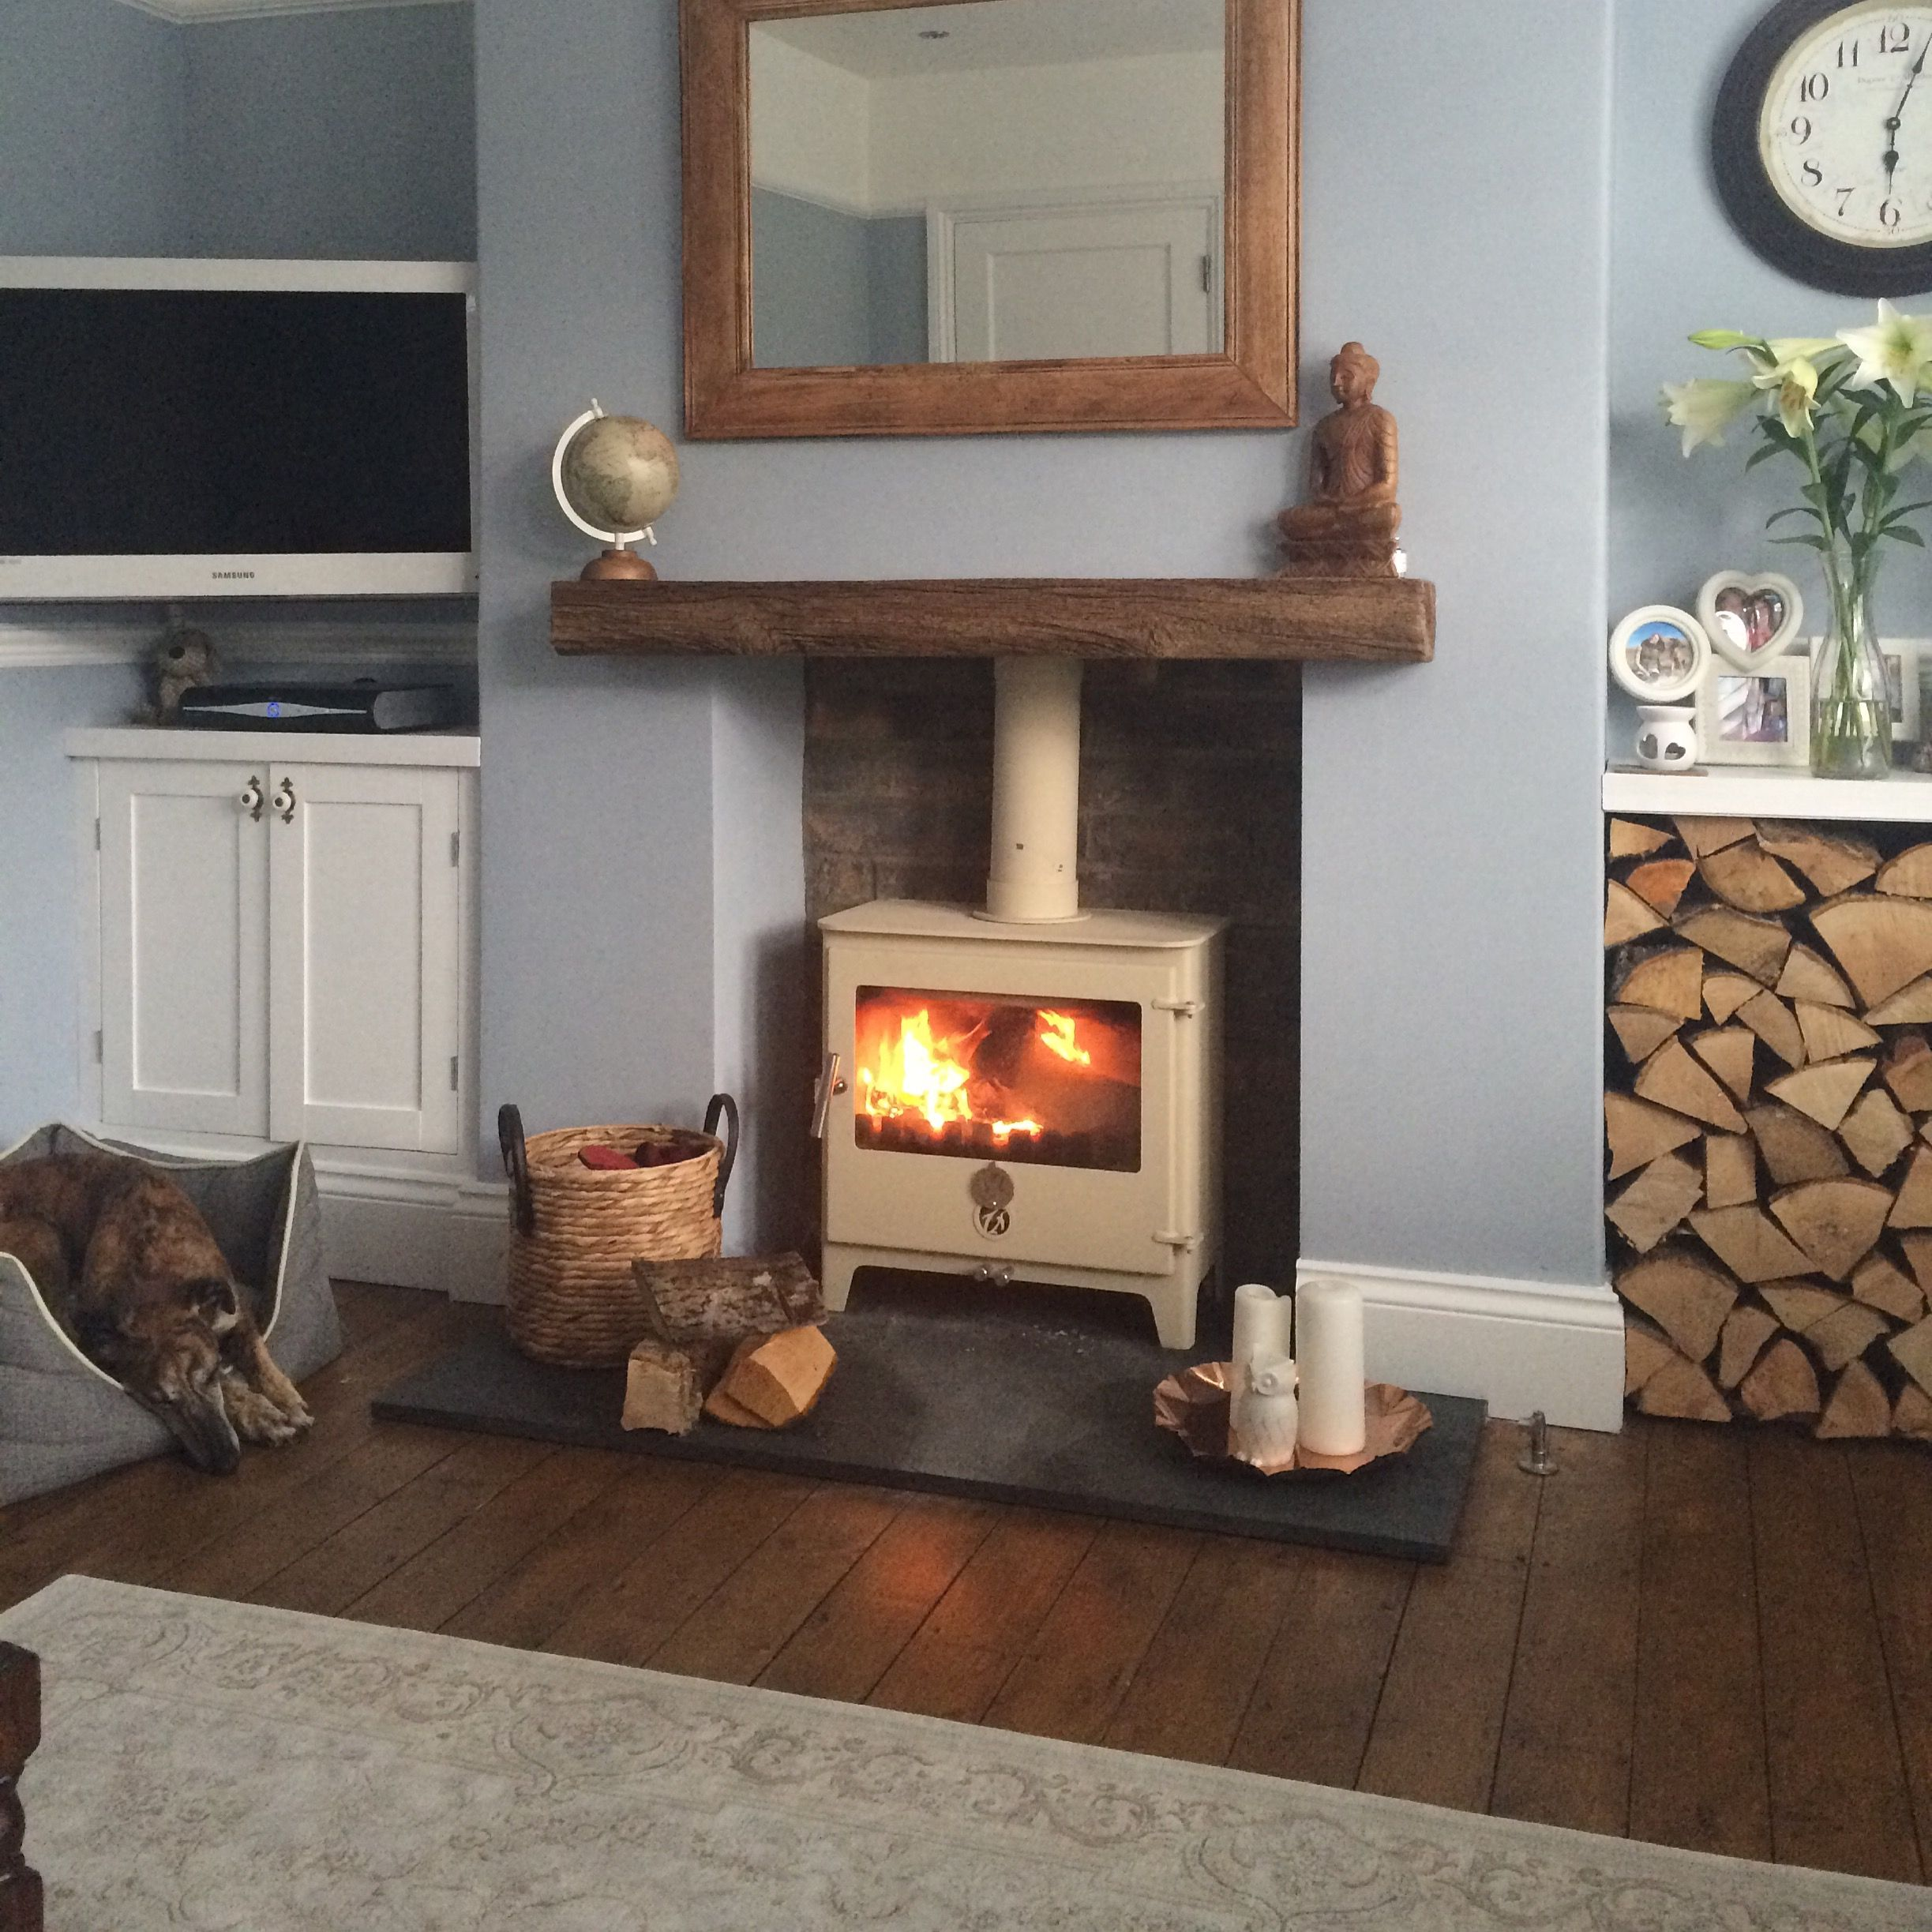 Living Room With Log Burner 5x7 Area Rug In Cozy Chilli Penguin Slate Harth Varnished Floorboards Blue Grey Walls